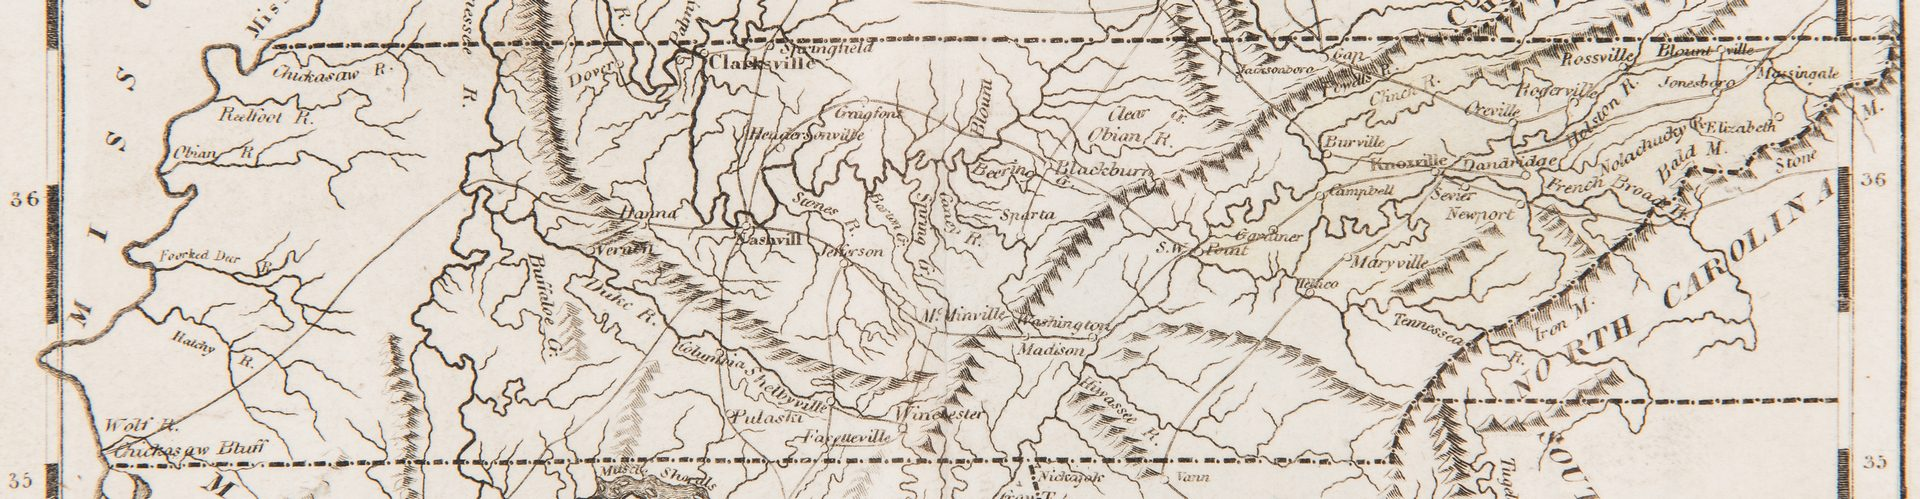 Lot 168: Tennessee Map, 1816 Carey